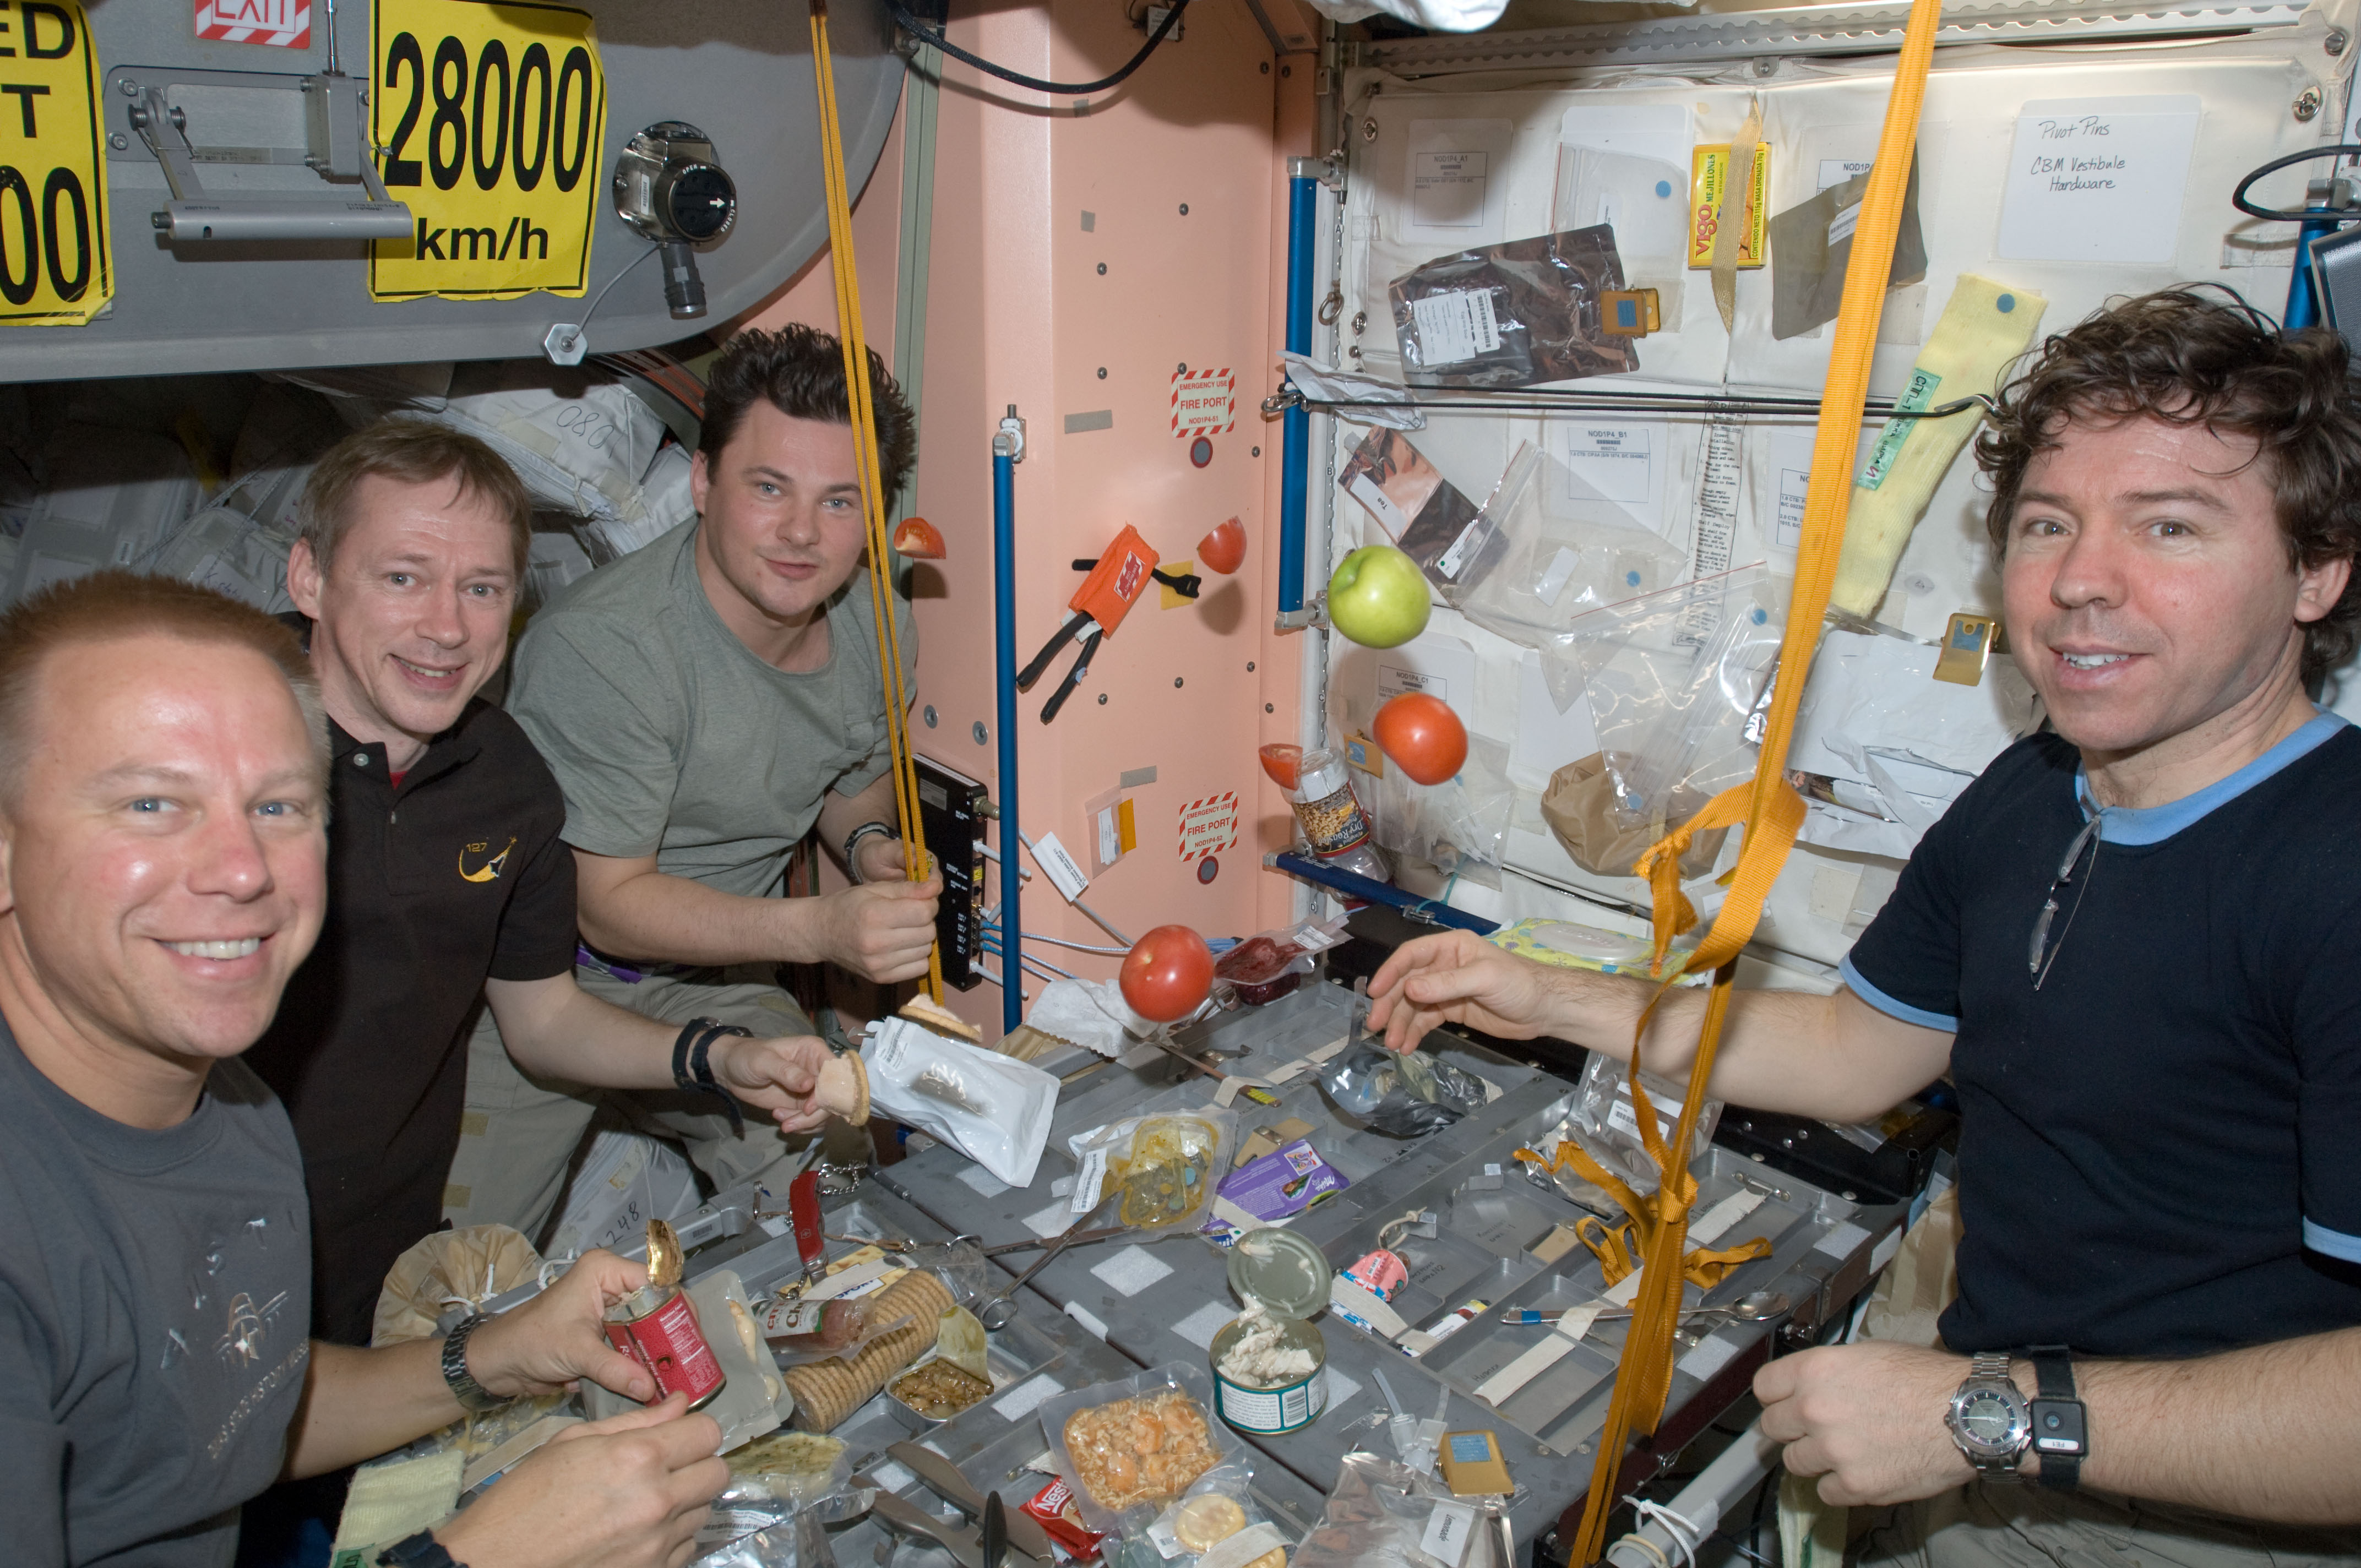 astronauts eating almonds in space - photo #15